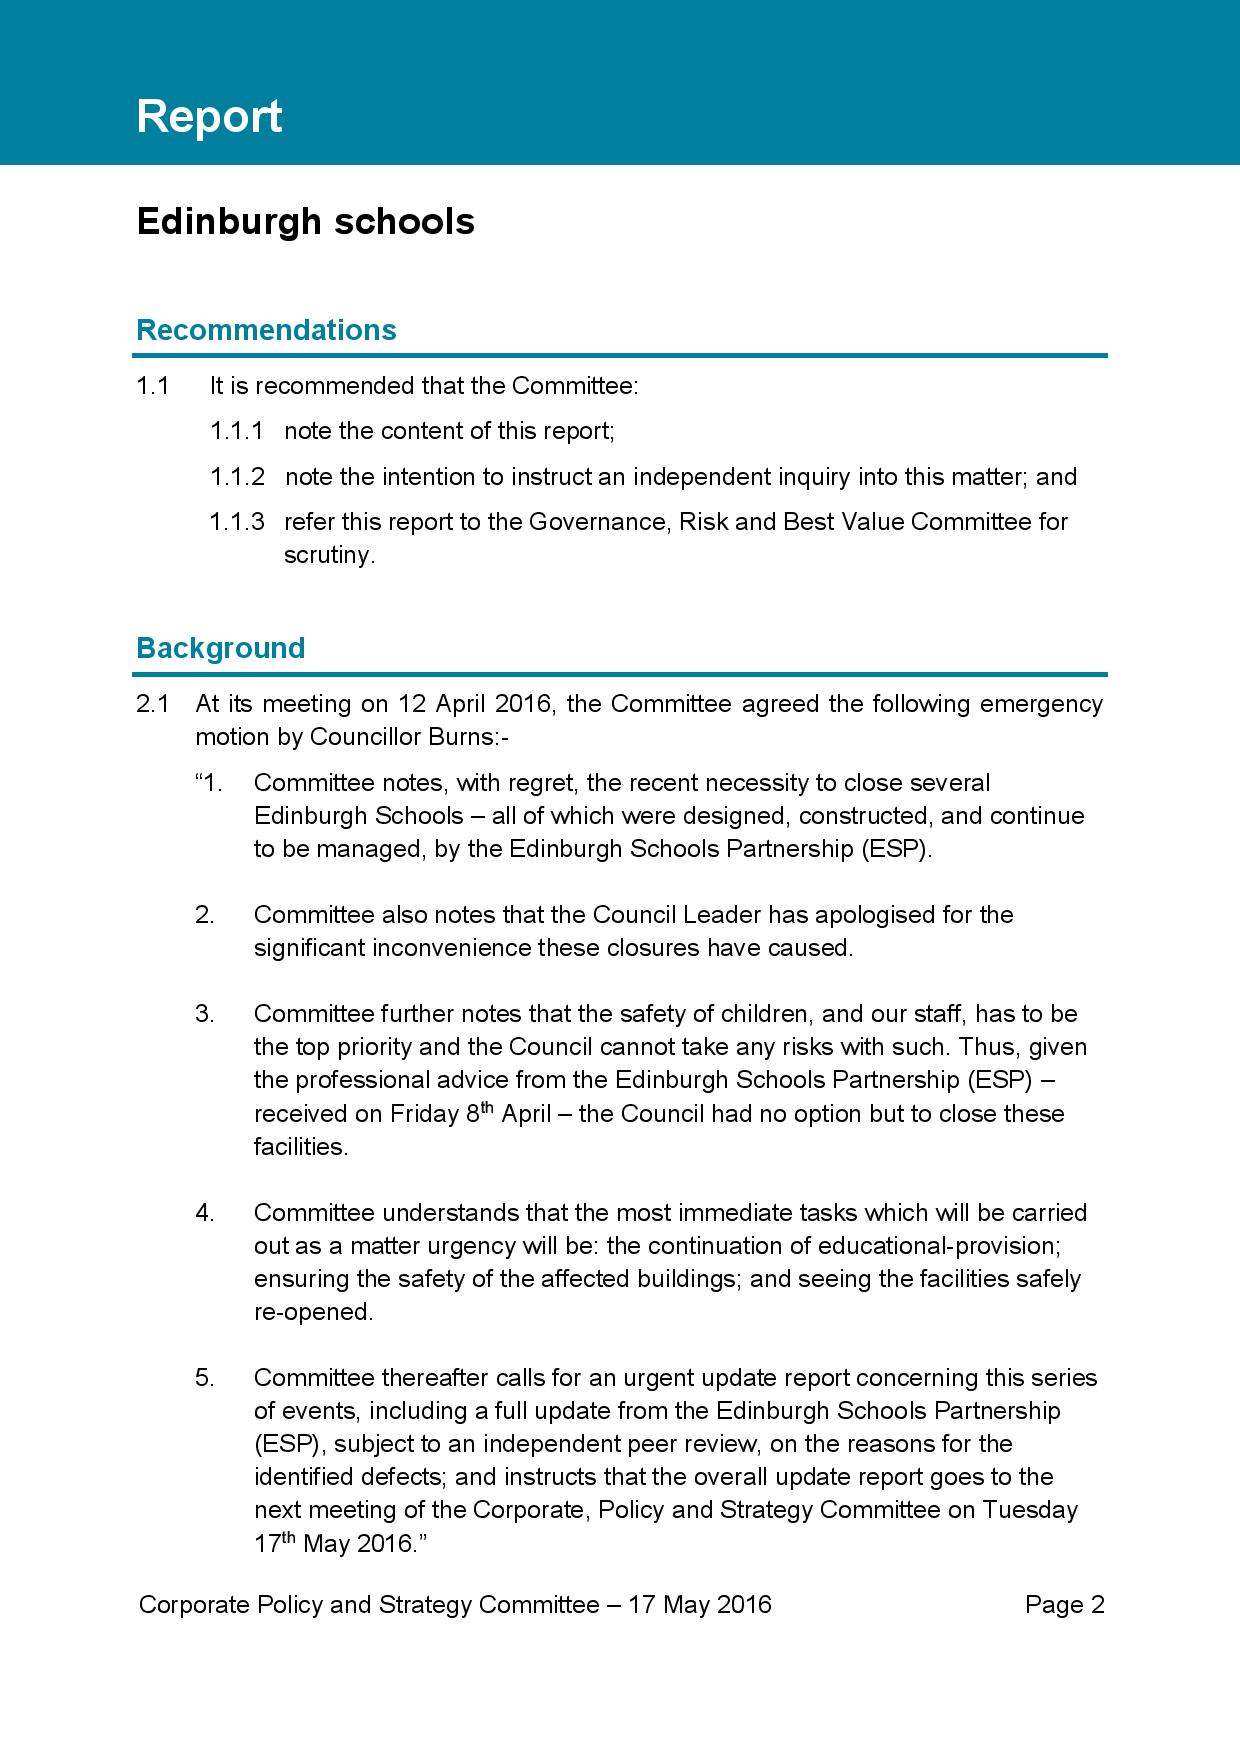 PPP1_Schools_CPS_Report_090516_v14_final-page-002.jpg